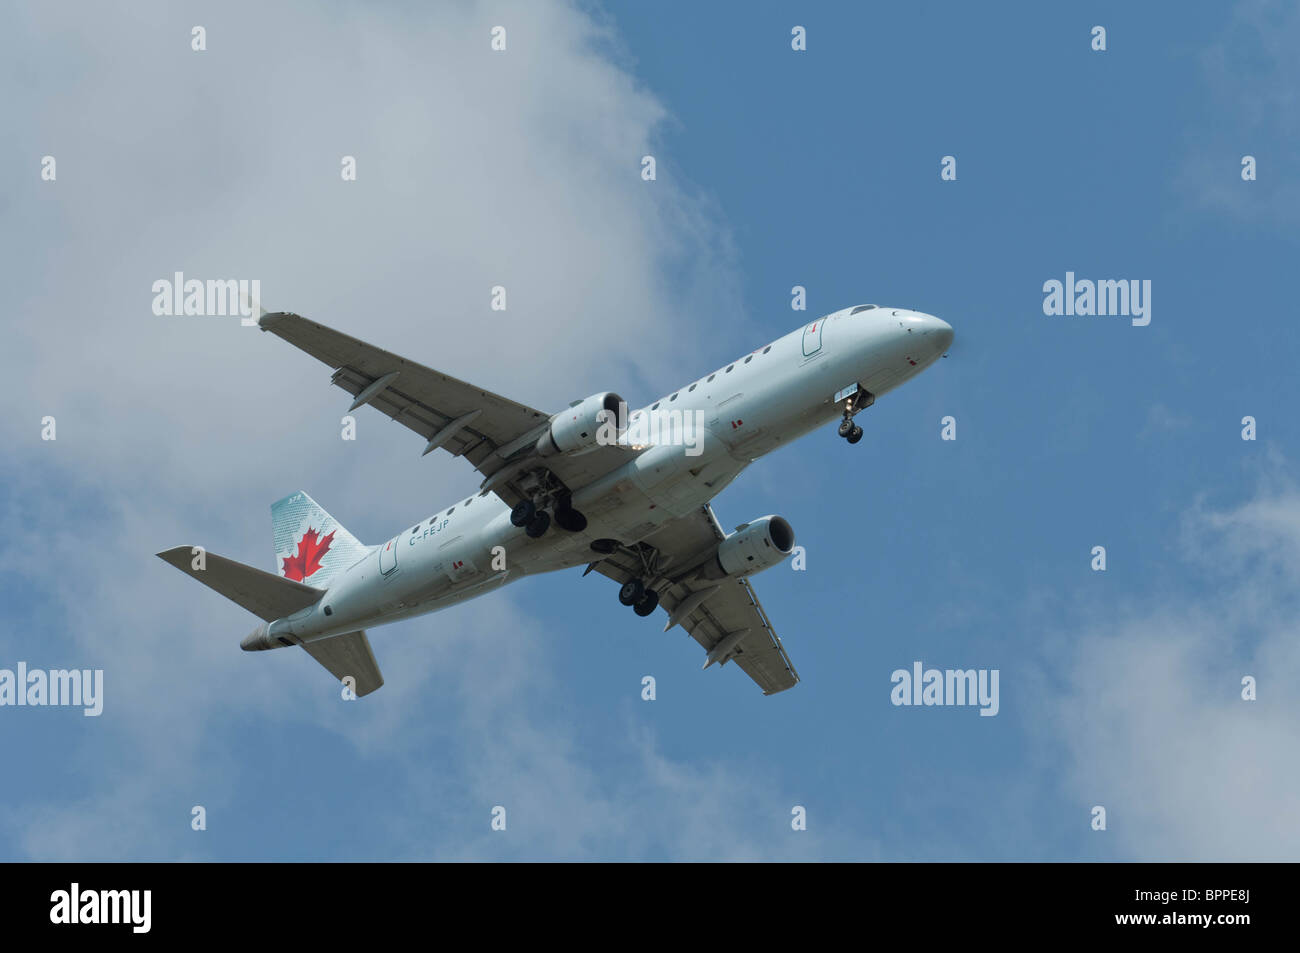 Air Canada Embraer 170-200LR on final approach to landing. Stock Photo